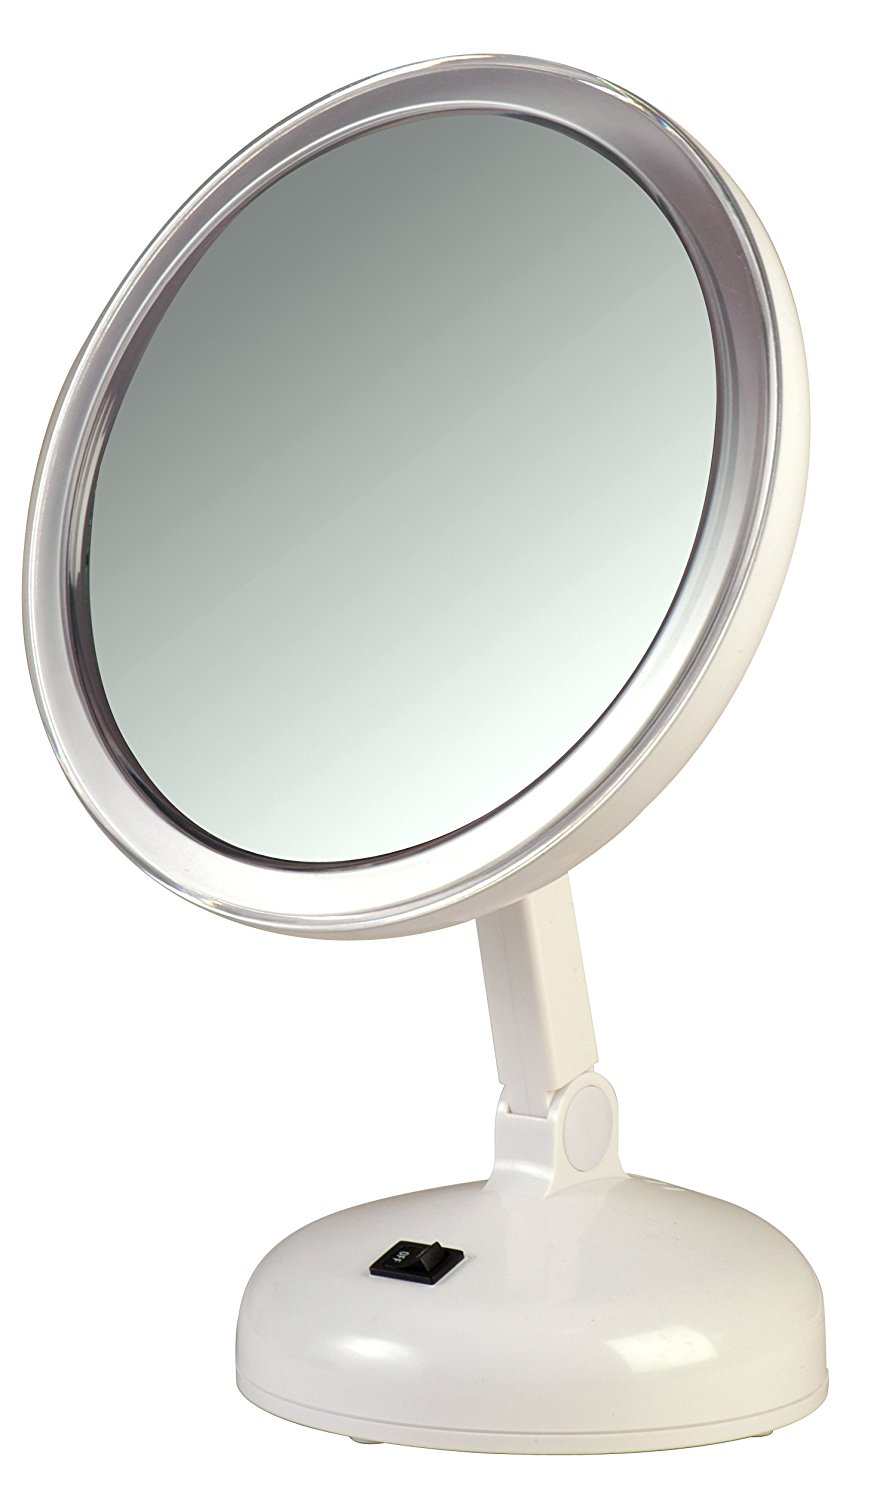 Best Lighted Makeup Mirror | Led Lighted Makeup Mirror | Lighted Wall Mirror